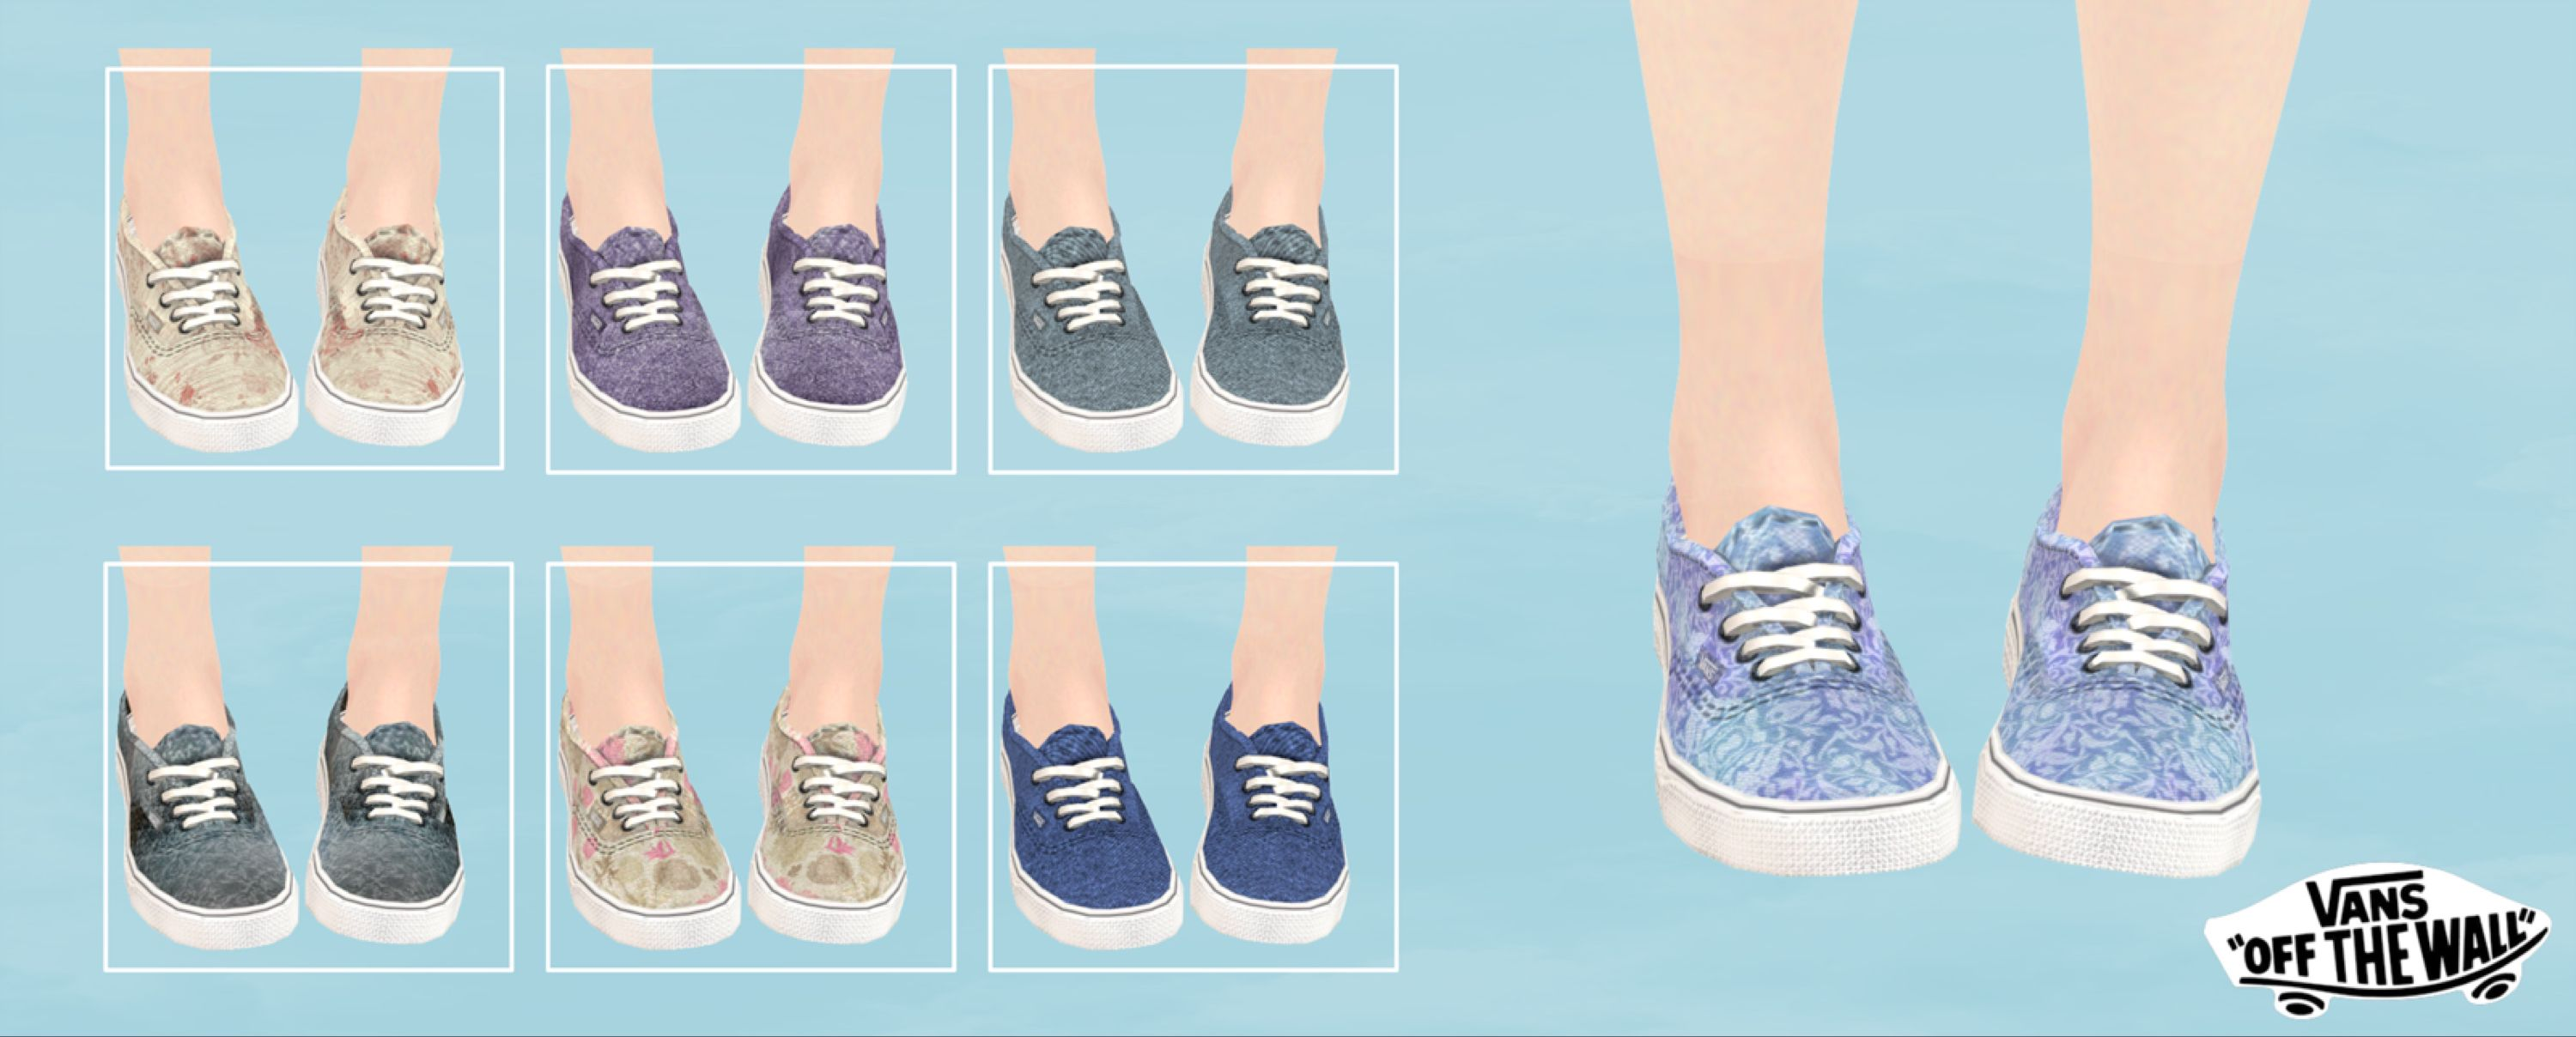 Vans Download By Mari Ichi On Deviantart With Images Vans